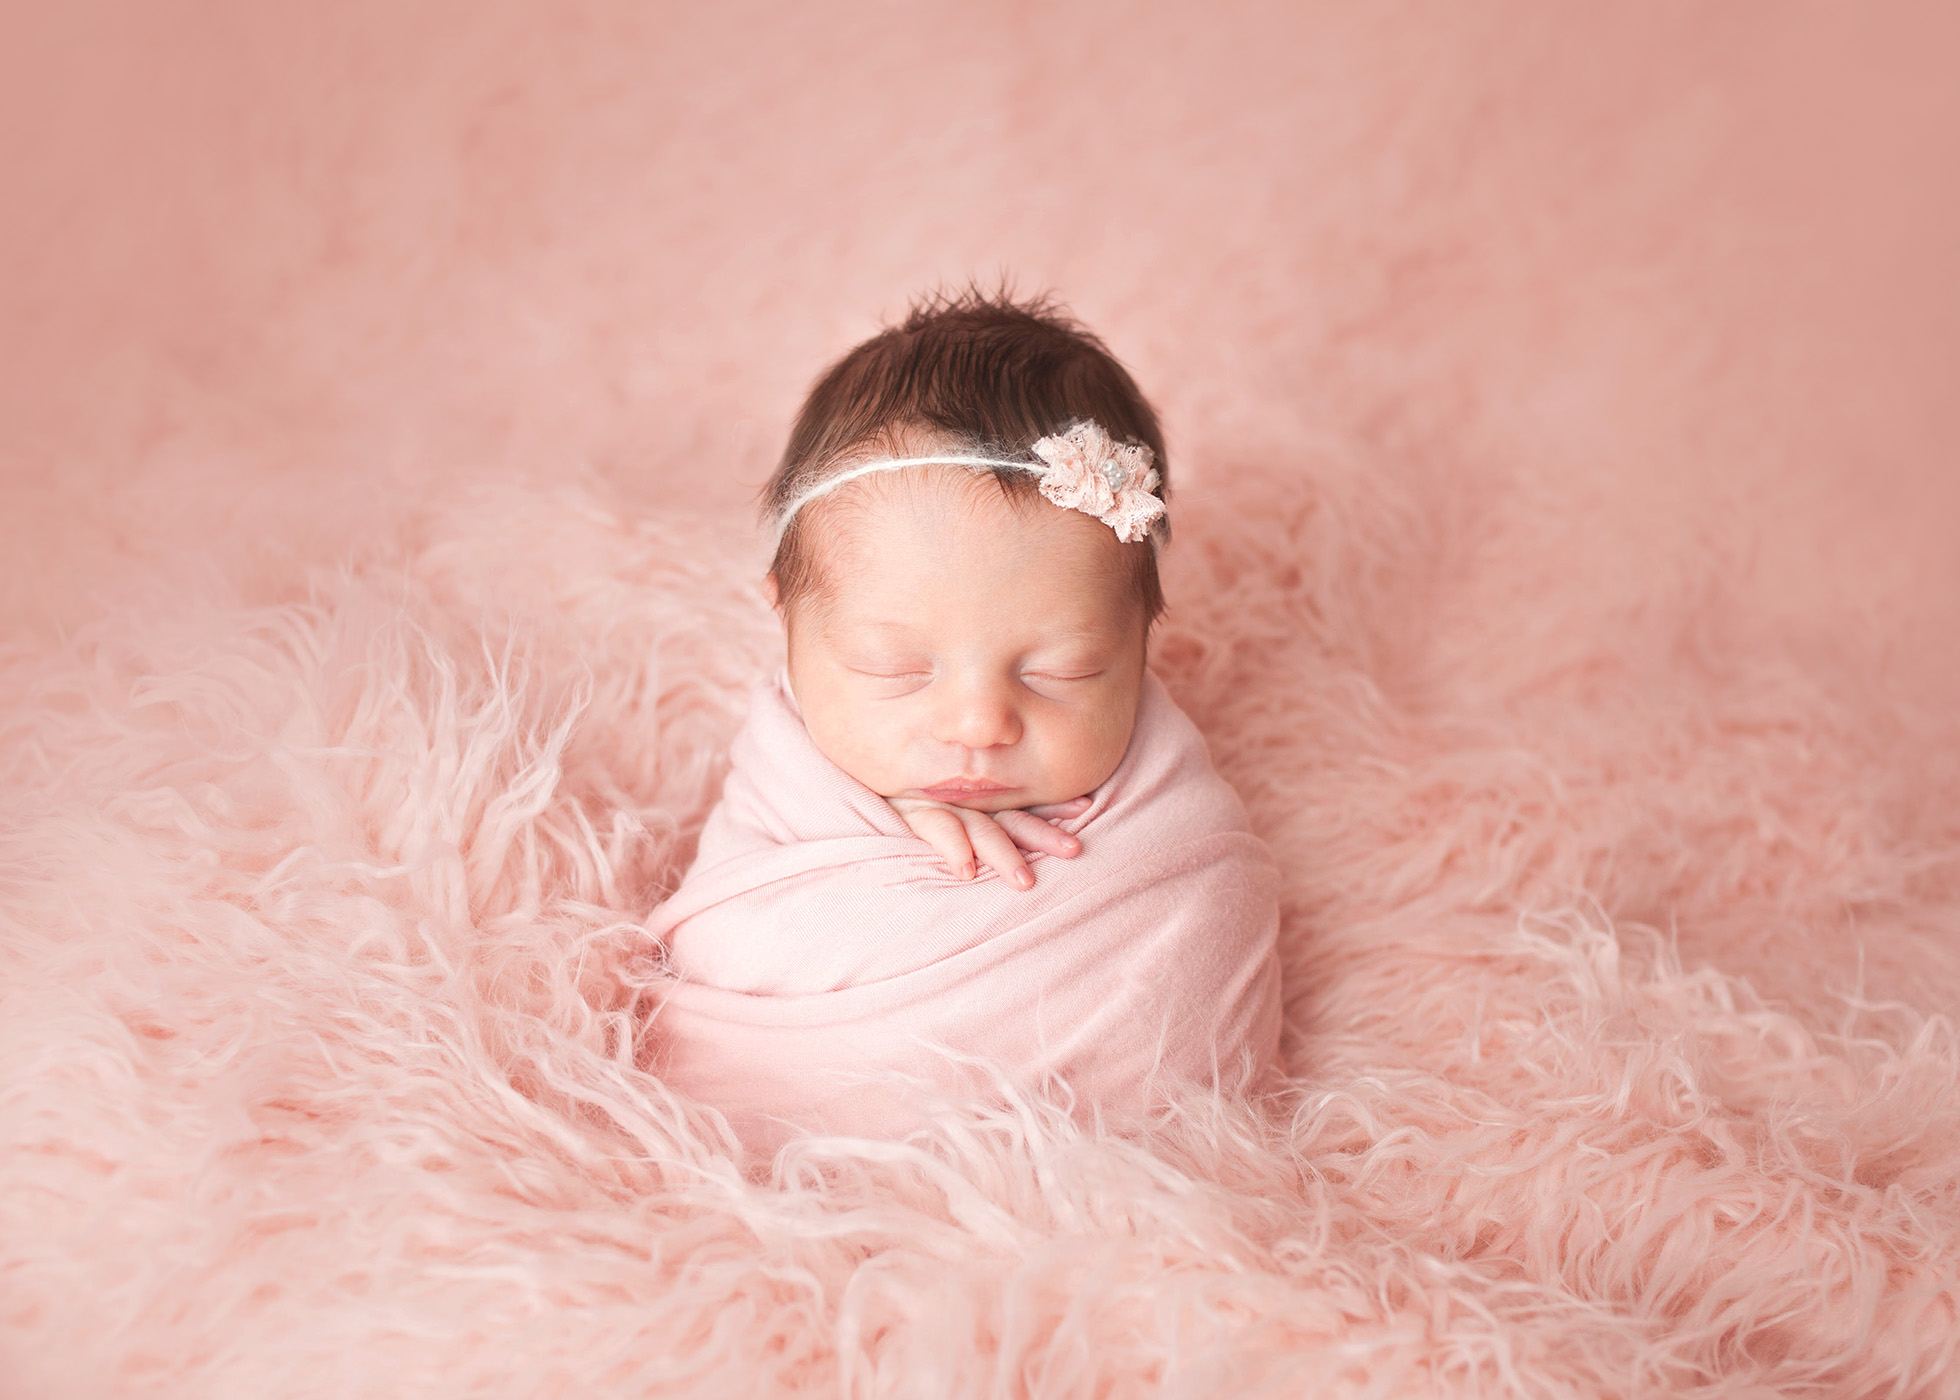 Studio newborn session of girl in potato sack pose on pink flokati by Cleveland newborn photographer Chelsey Hill Photography